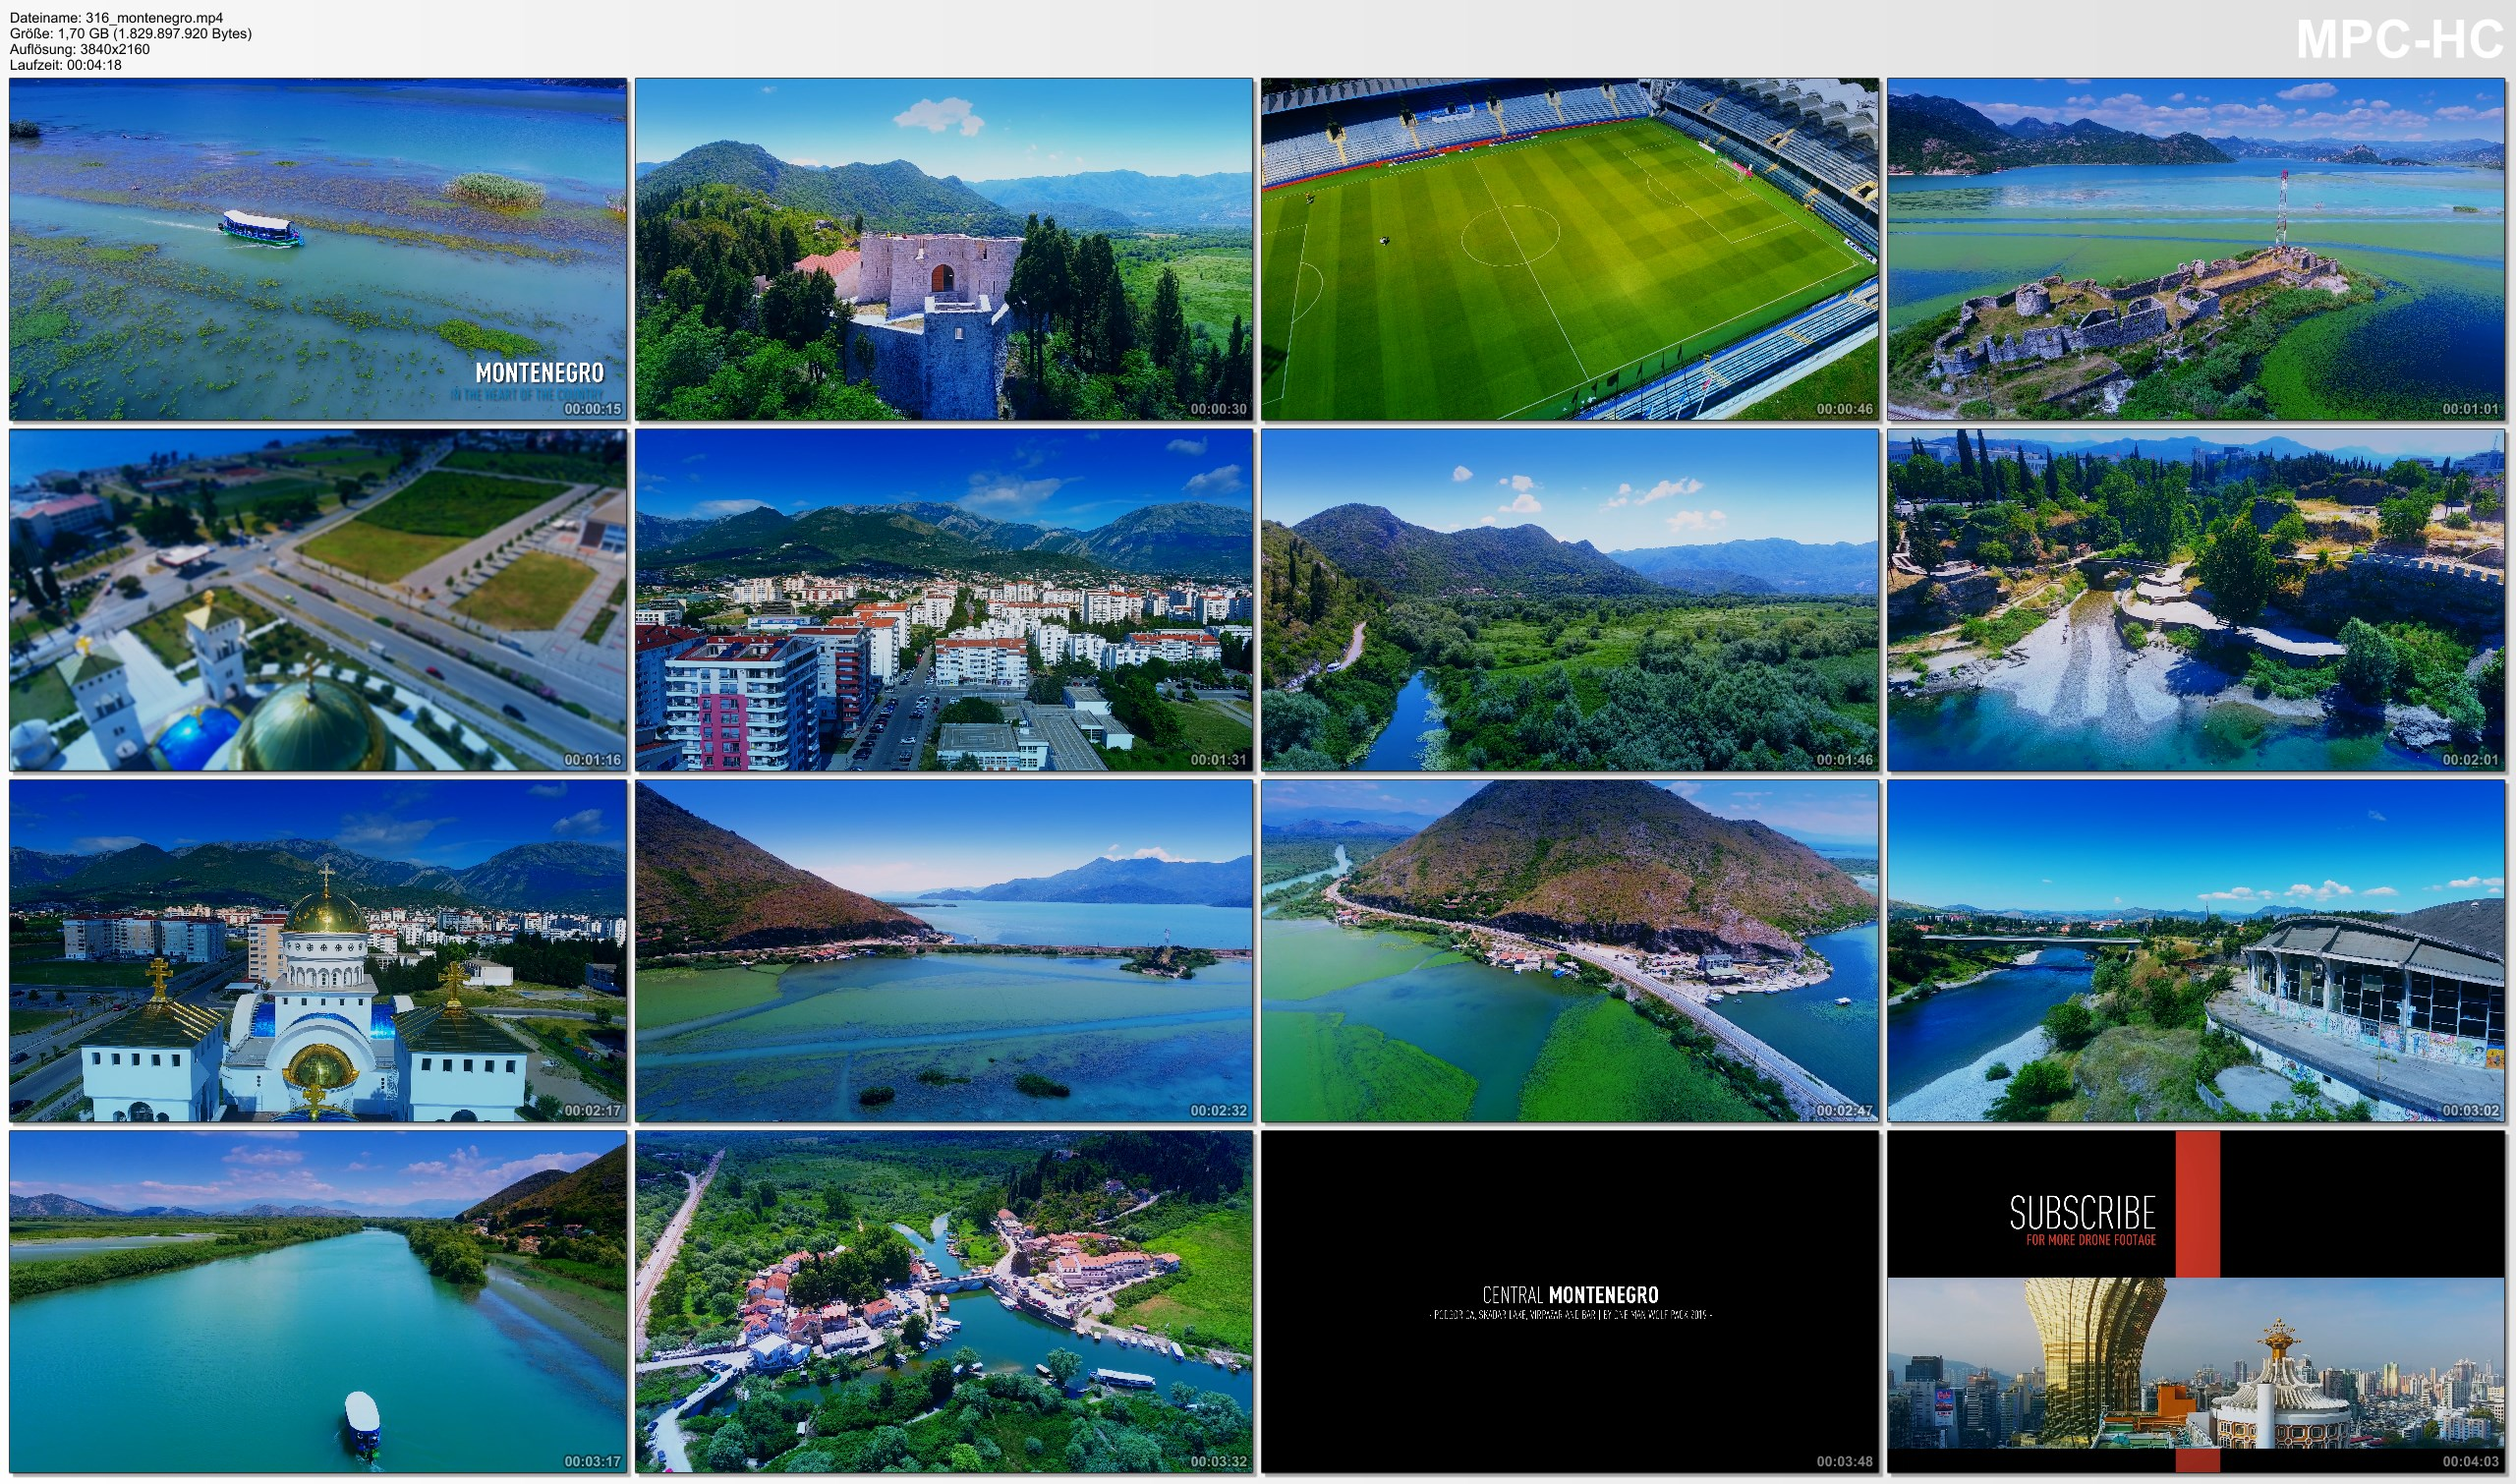 Drone Pictures from Video 【4K】Drone Footage | Central Montenegro - Podrogica | Skadar Lake | Virpazar | Bar | Cinematic Aerial